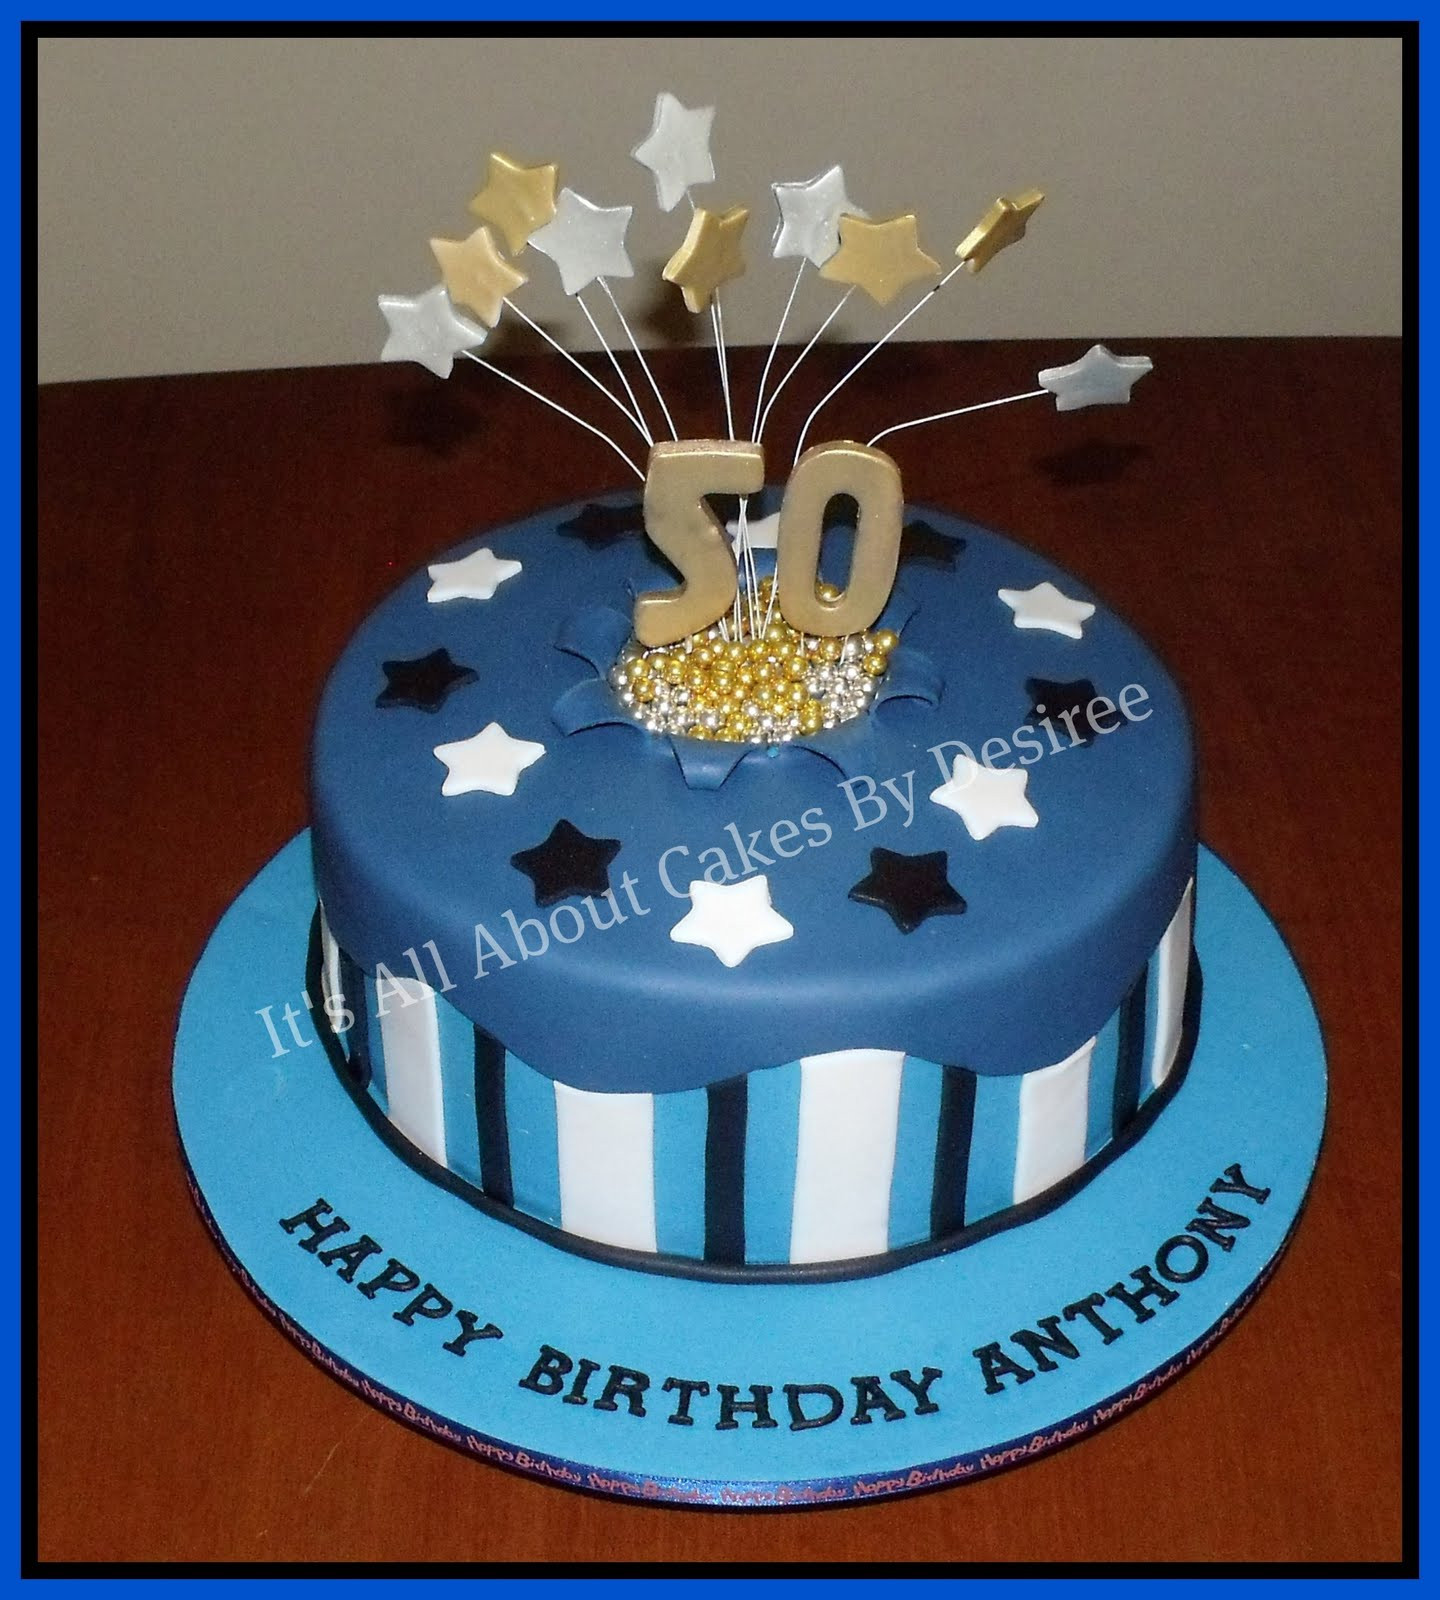 Best ideas about Birthday Cake Images For Man . Save or Pin 50th birthday cakes on Pinterest Now.